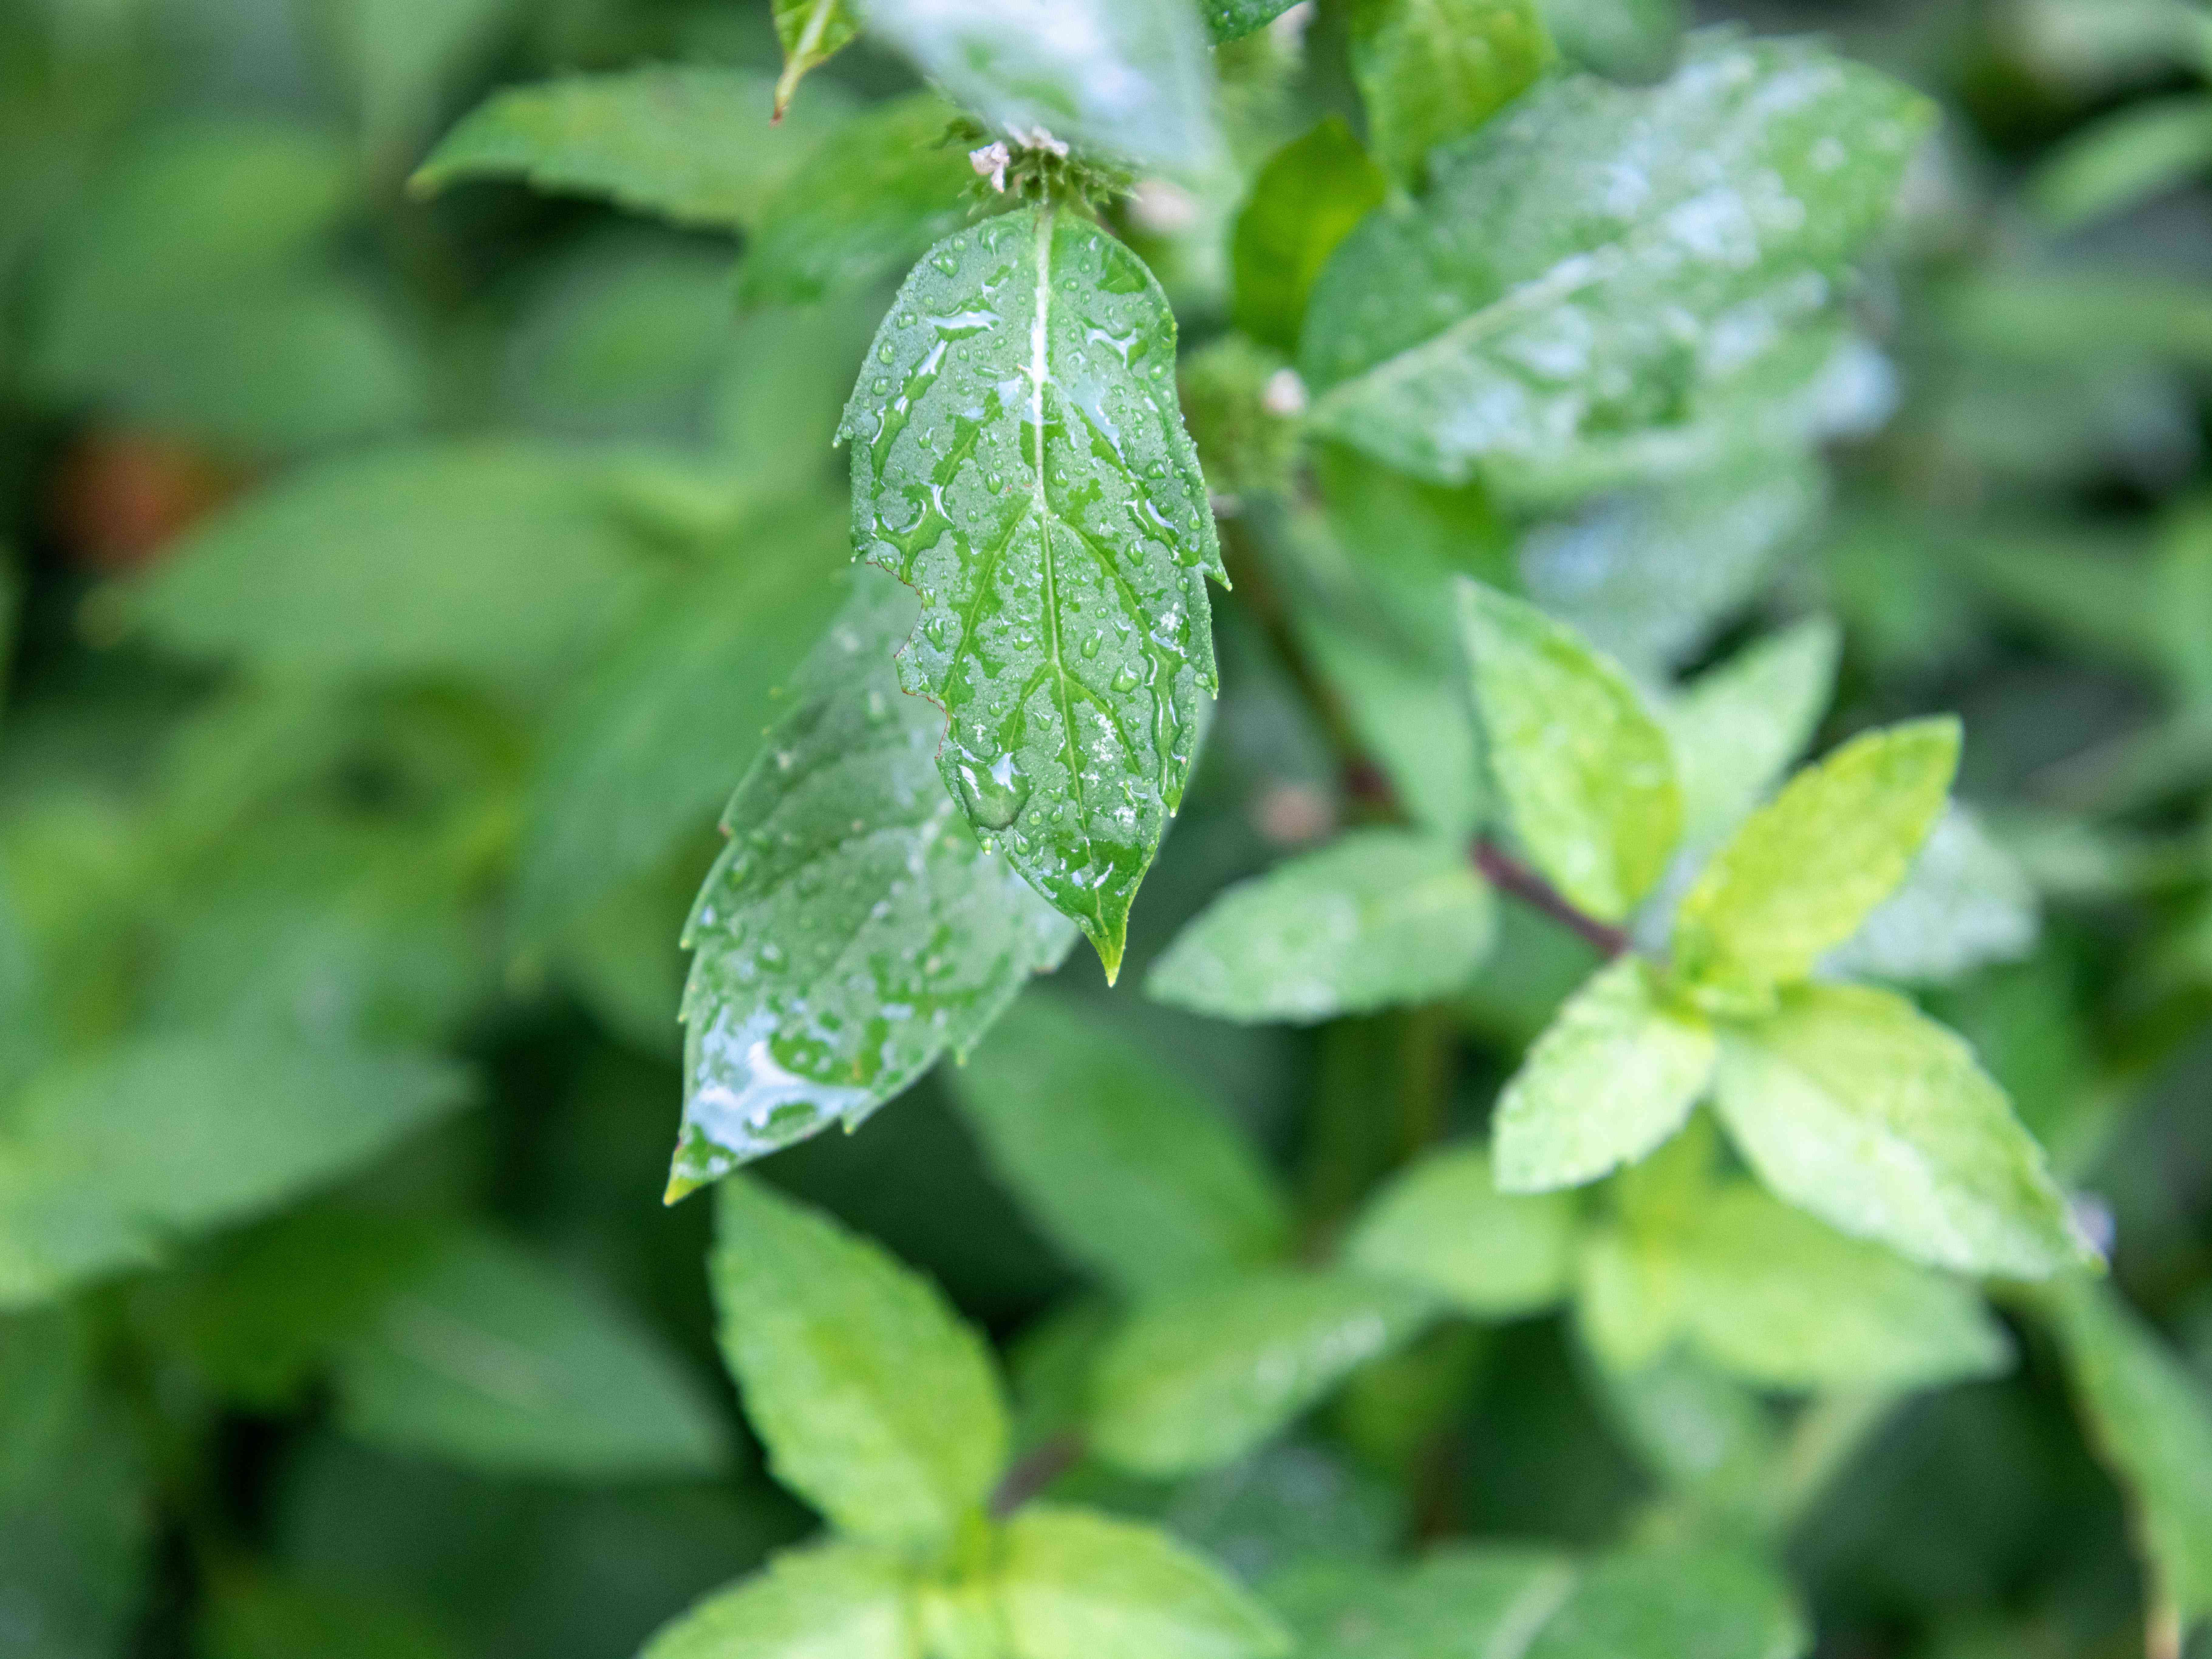 close view of peppermint plant growing outdoors with water droplets